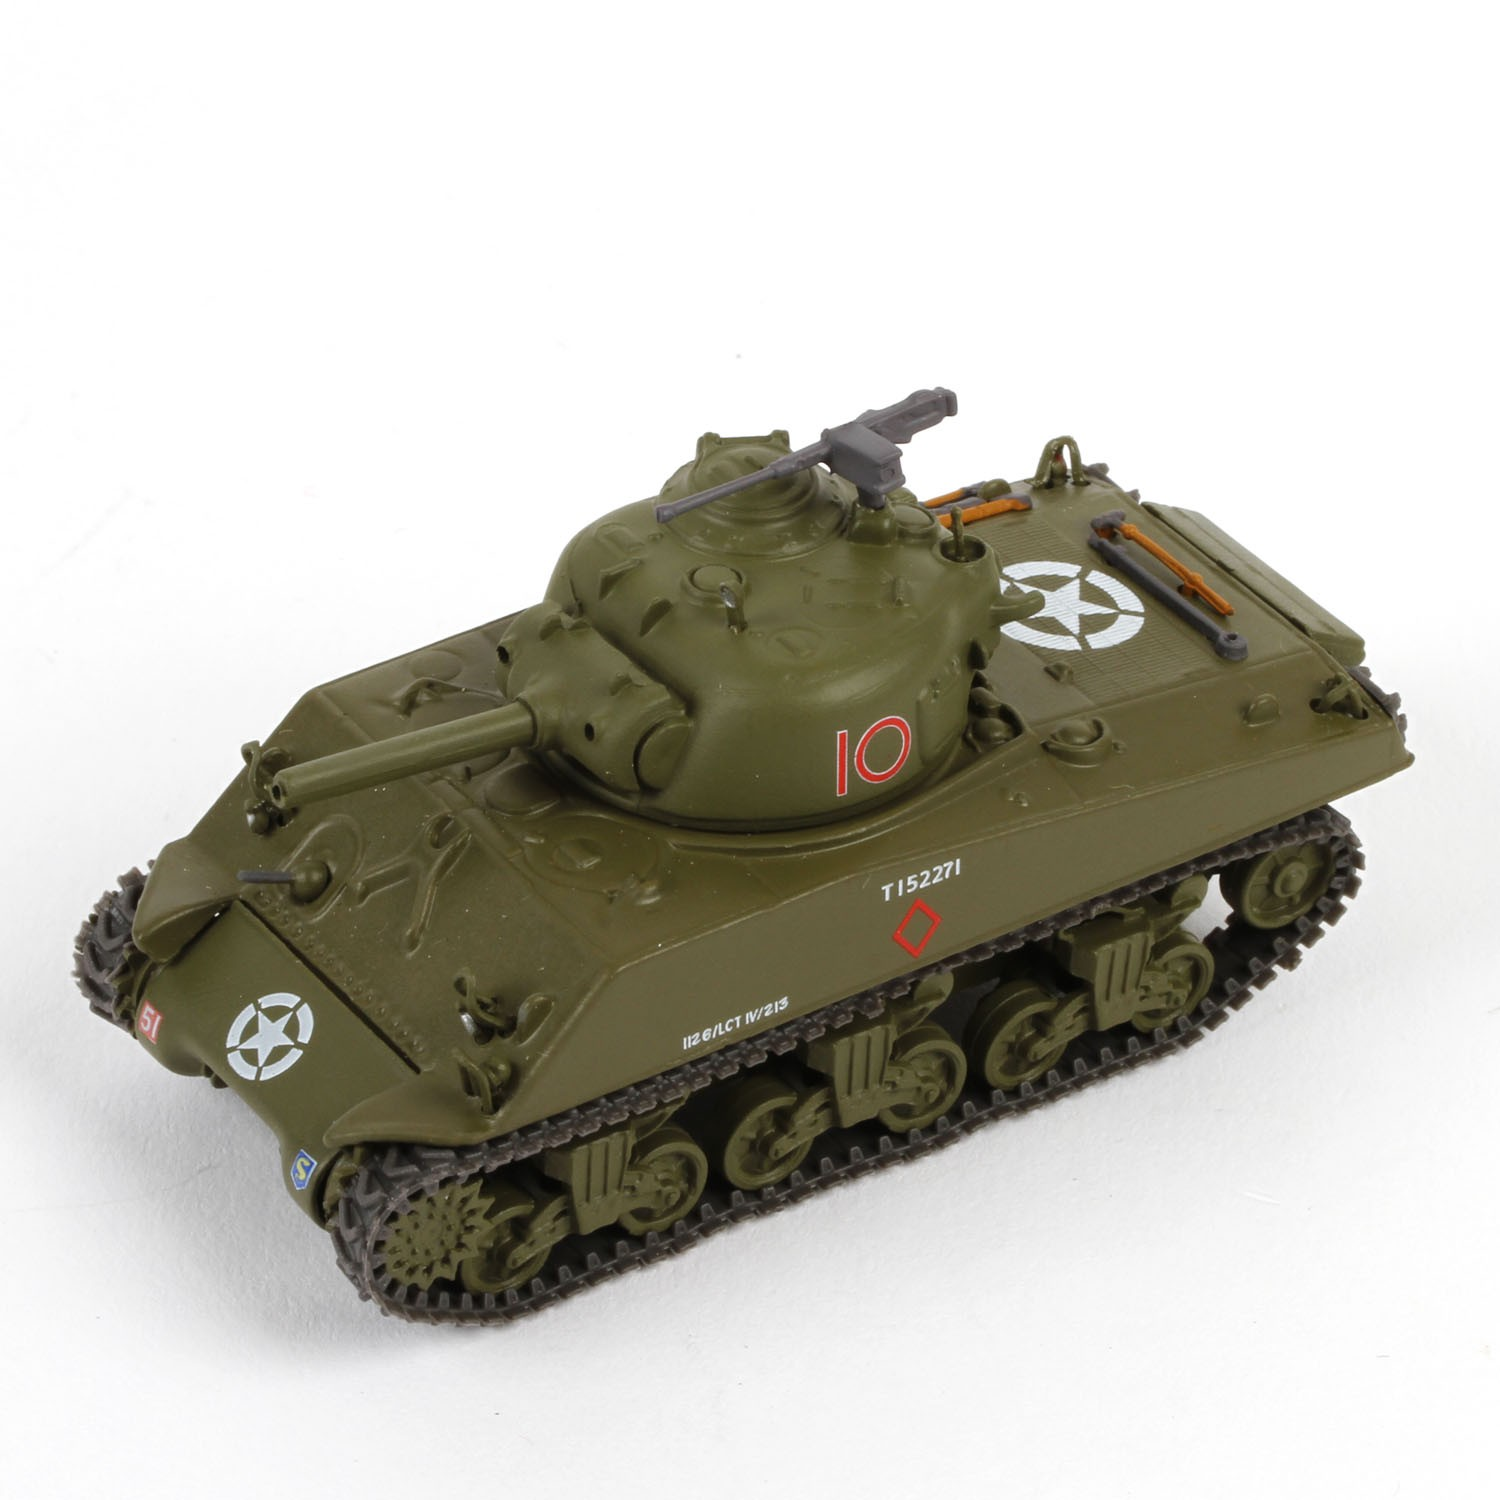 1 8 scale rc cars with Diecast Tanks Giants World War Ii on Traxxas 3707 Rustler Vxl Black Rc Truck moreover Build Ford Mustang Shelby besides Big Scale Model Car Kits 27hjZYRVkMch1qpYlFc6JbduzauZkkhlSa7voW45Pic additionally Rc31 additionally Bugatti Vision Gran Turismo.